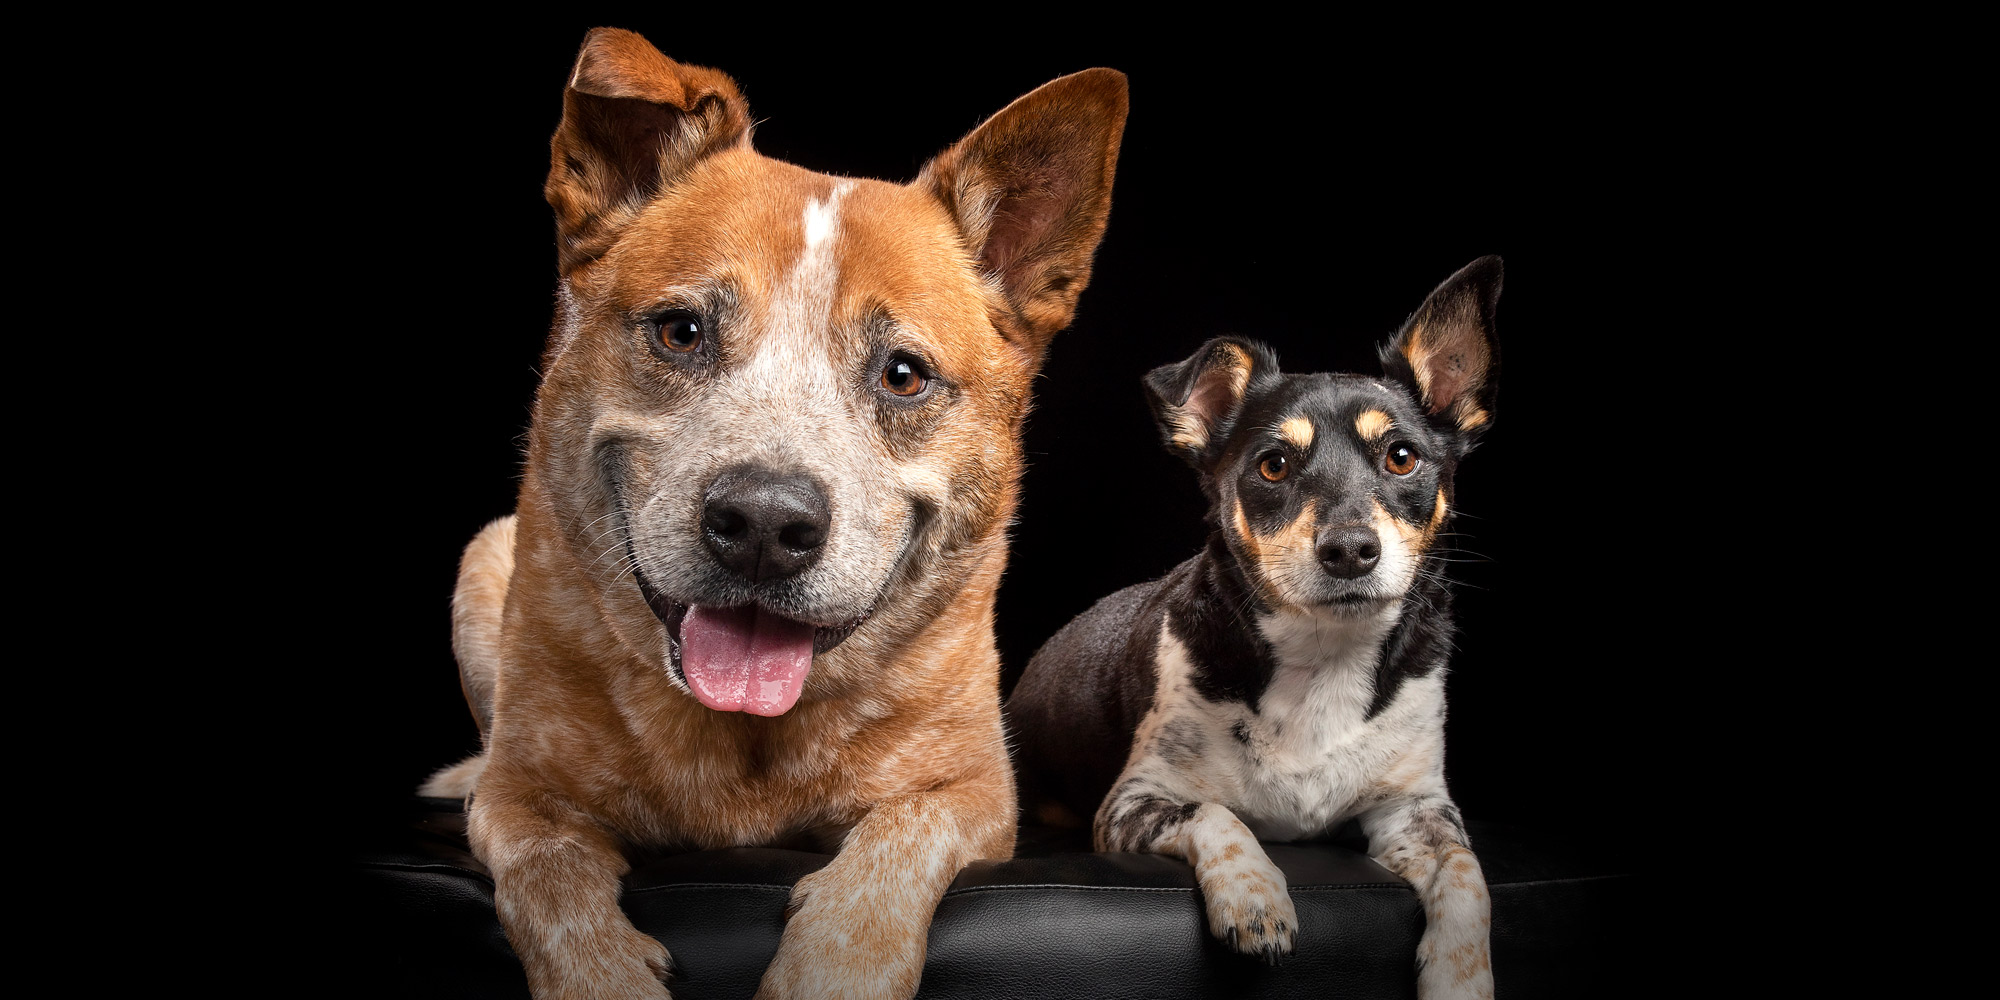 Red Cattle Dog and Jack Russell together.